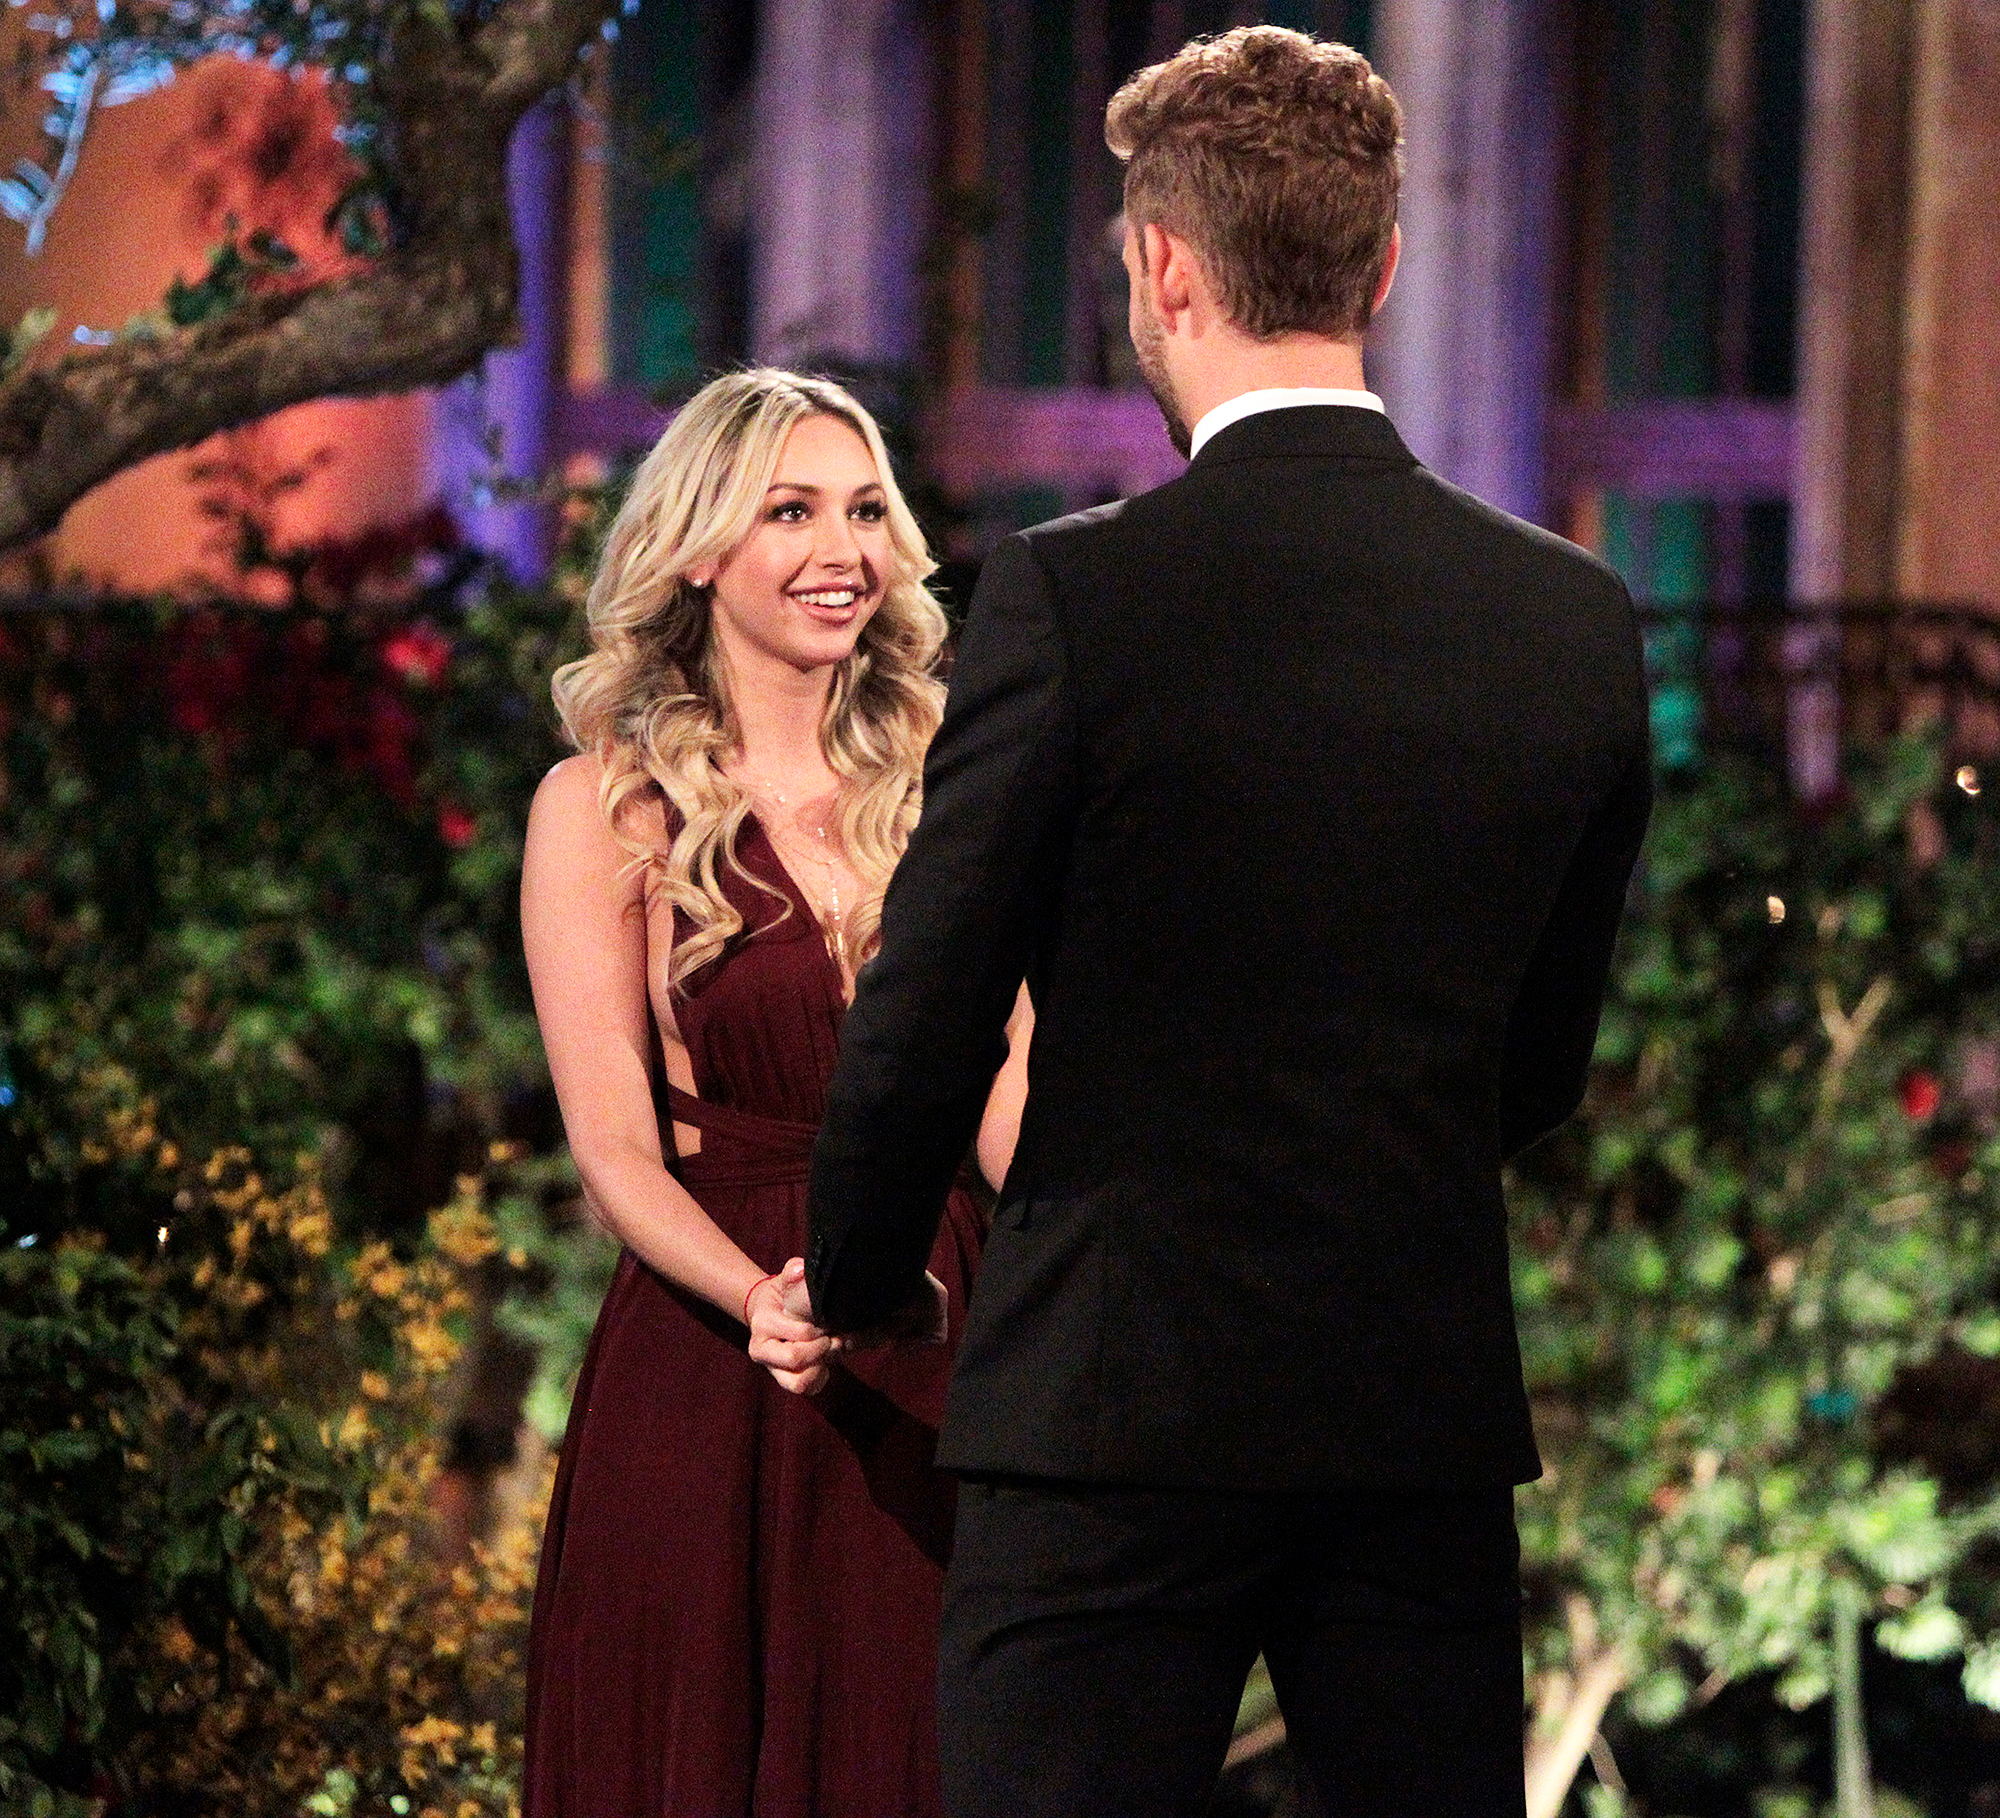 Corinne Olympios Reflects on Controversial Bachelor Naps Regrets